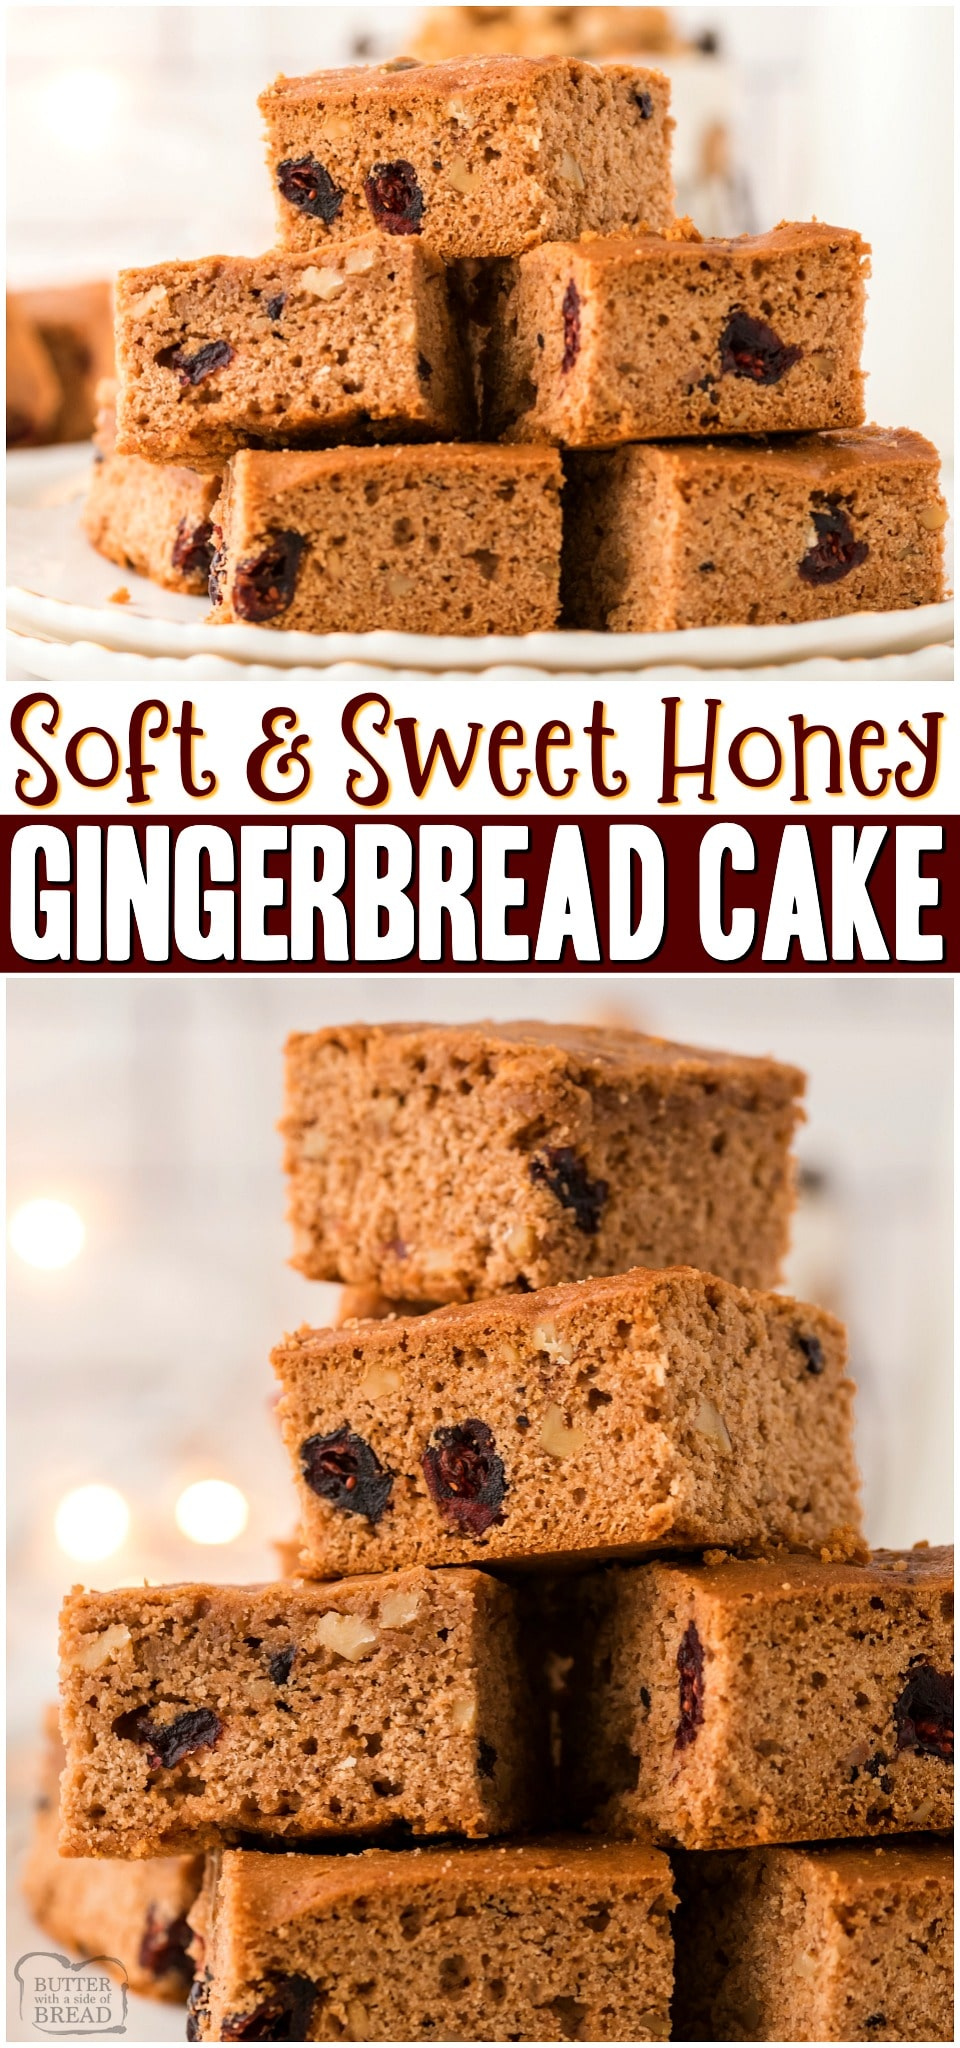 Gingerbread Cake made with honey instead of molasses for a sweetly spiced holiday cake! Festive Gingerbread cake with cranberries & walnuts perfect for dessert!#cake #honey #gingerbread #holidays #Christmas #baking #easyrecipe from BUTTER WITH A SIDE OF BREAD